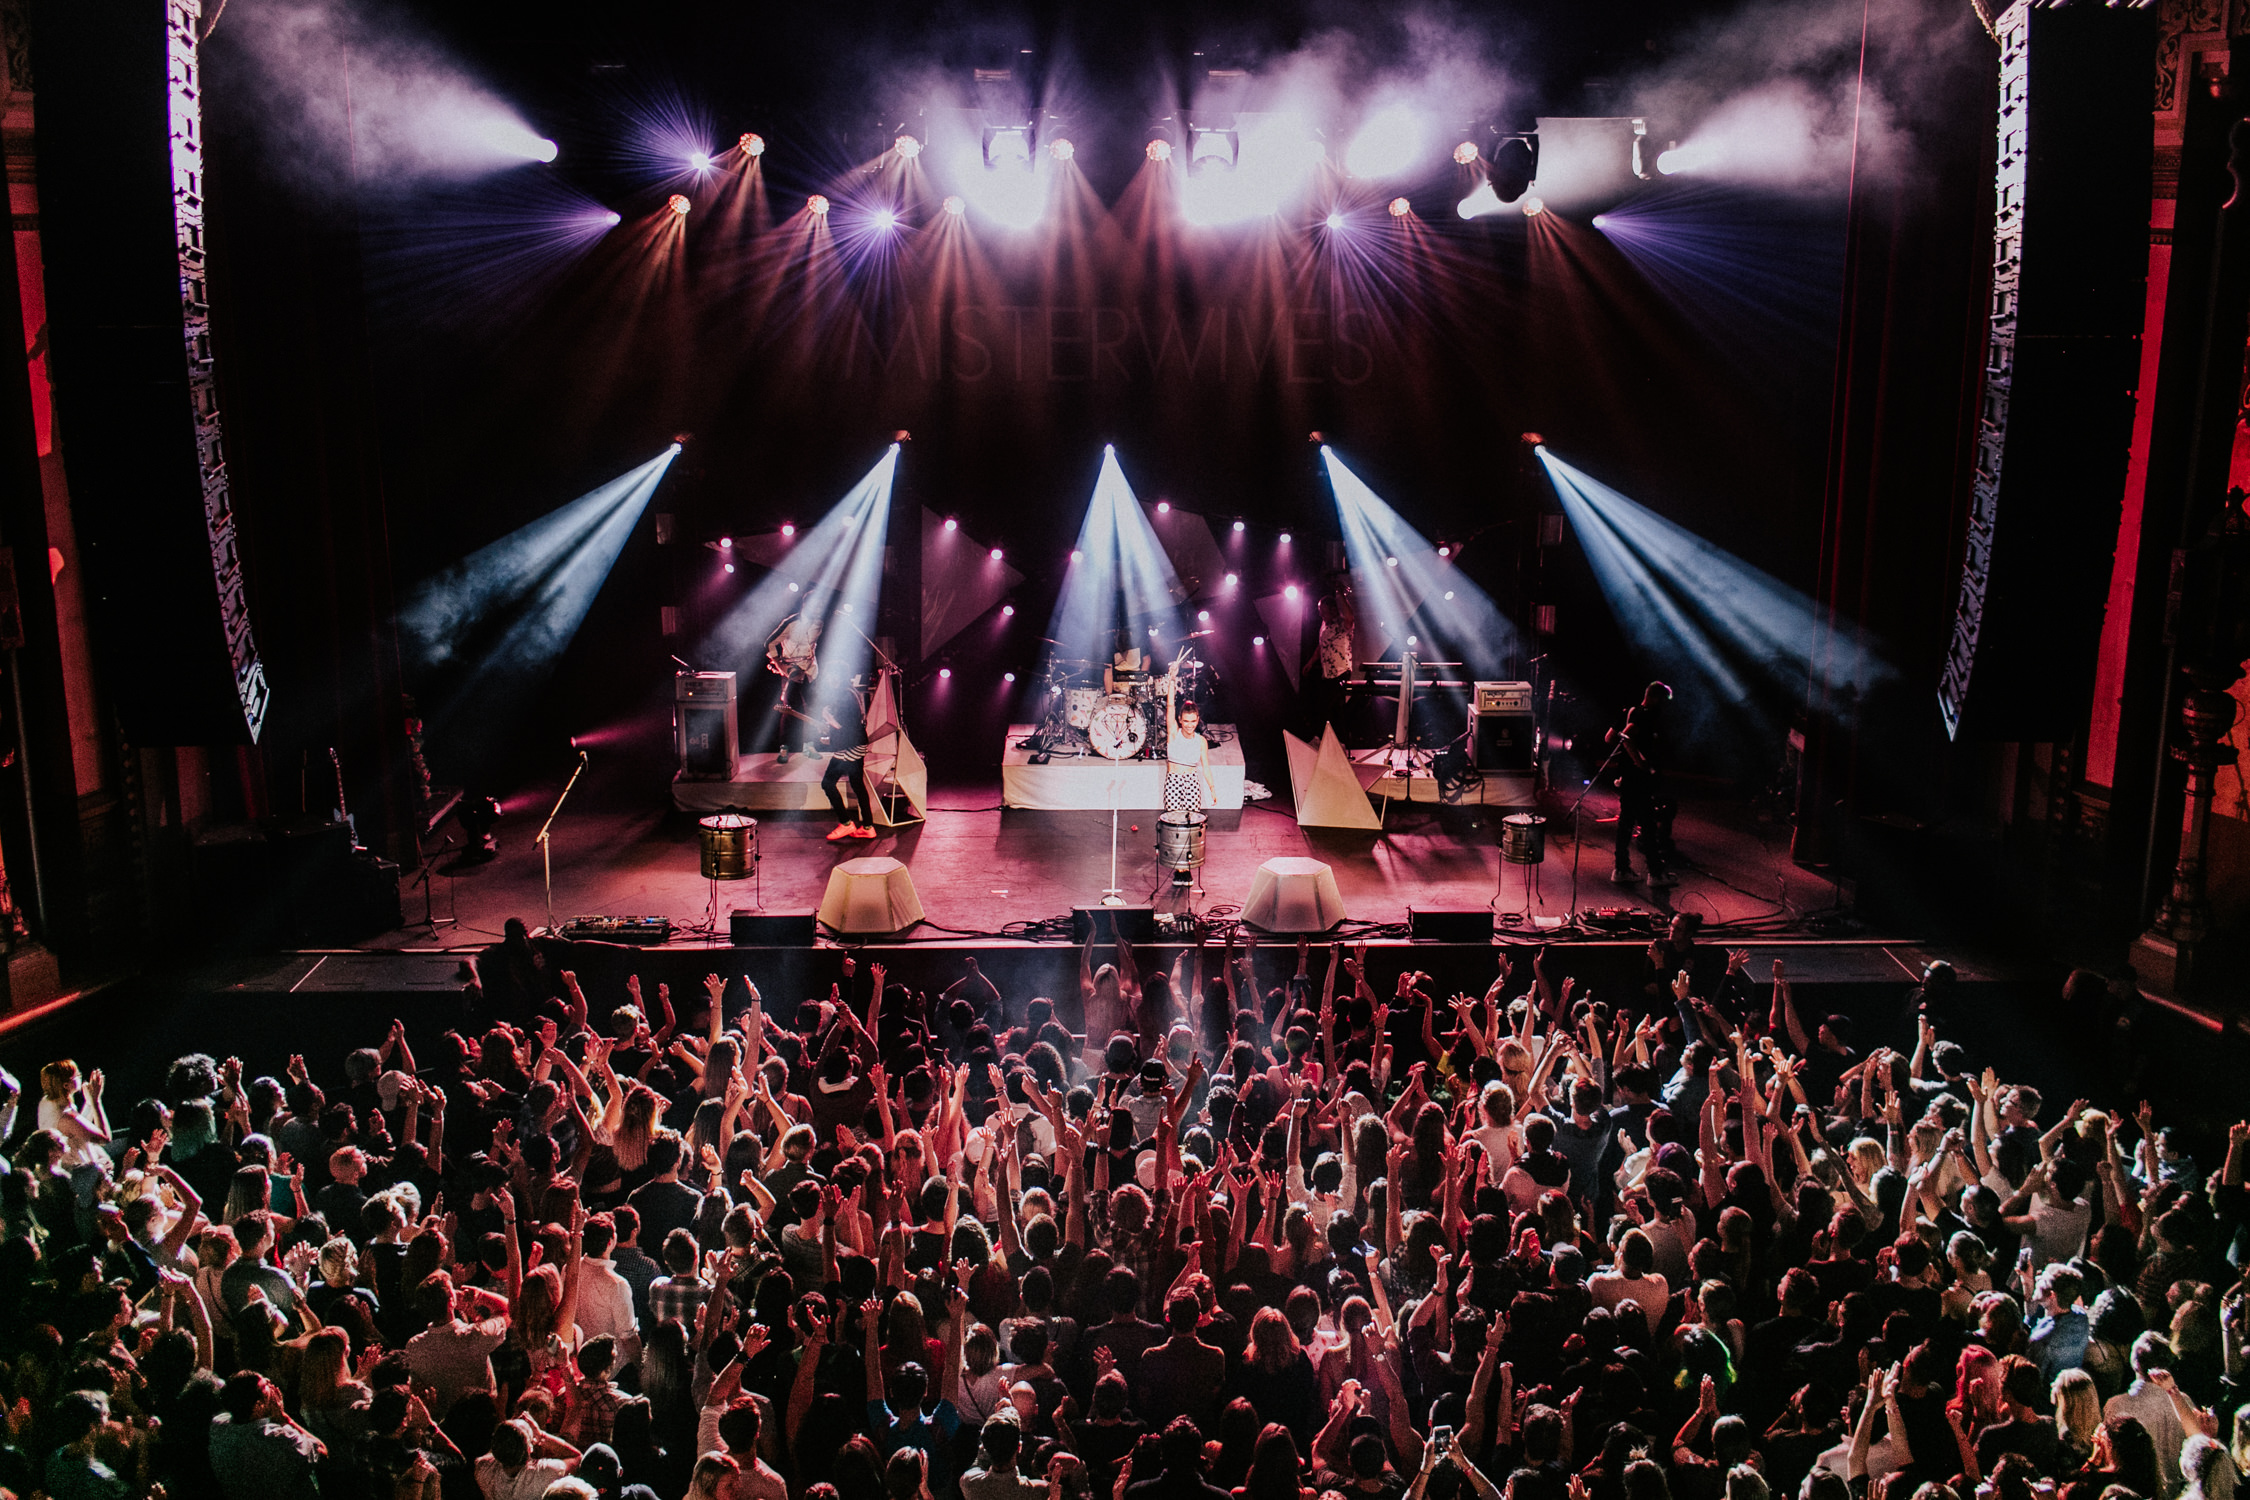 misterwives-live-show-crowd-tour-AnnaLeeMedia